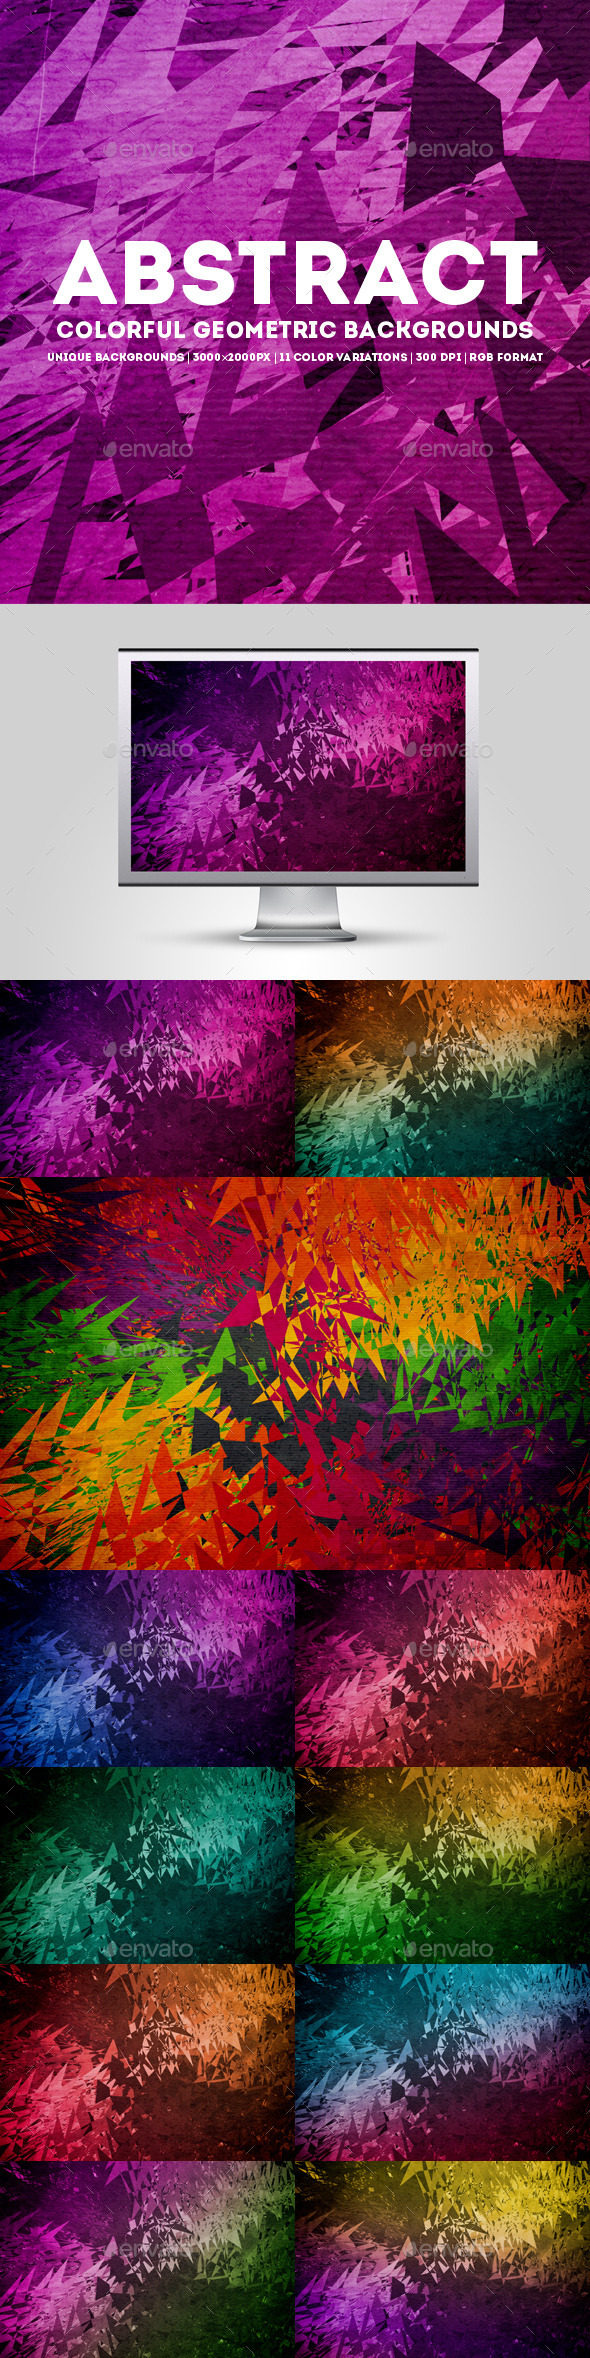 Abstract Colorful Geometric Backgrounds